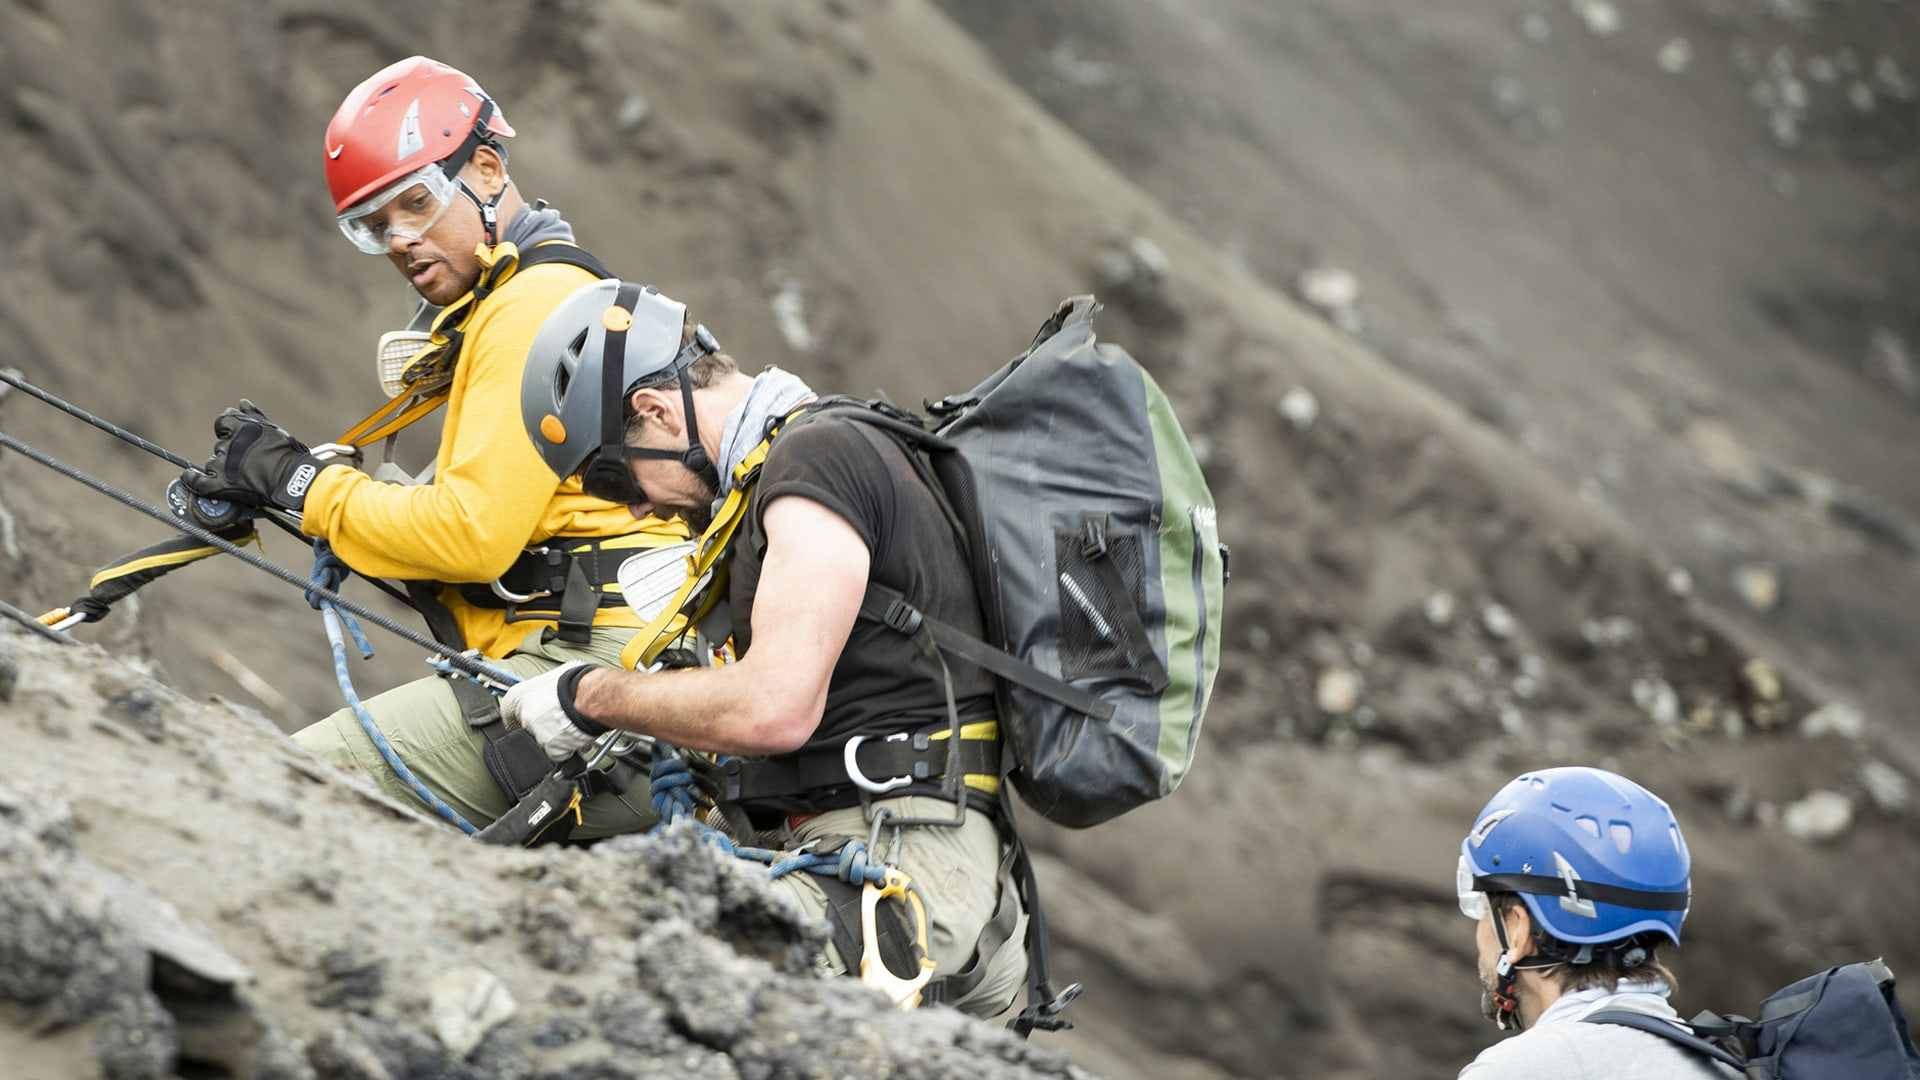 Will Smith, volcanologist Jeff Johnson and explorer Erik Weihenmayer descend into a volcano in Welcome to Earth